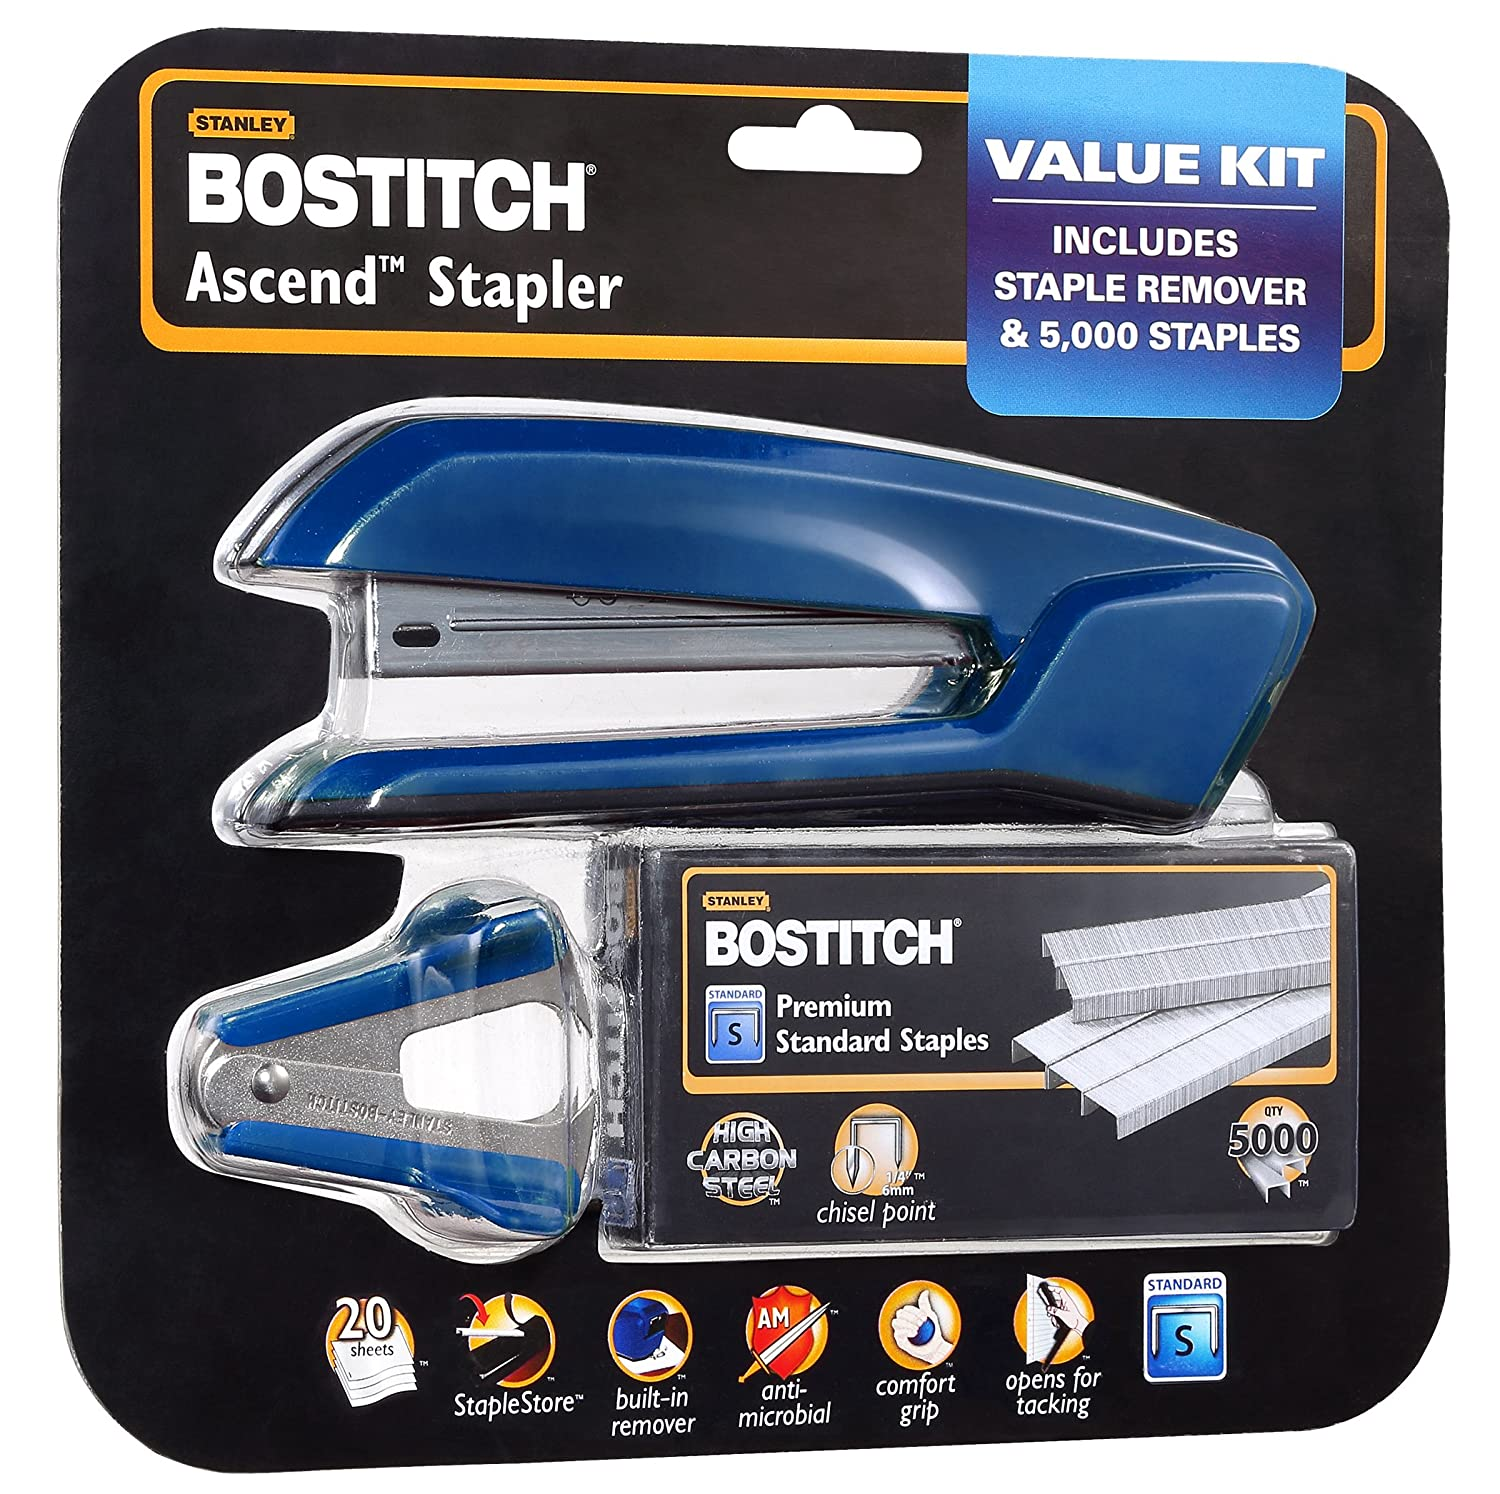 White B210-WHT Bostitch Office B210R-WHT Ascend 3 in 1 Stapler with Integrated Remover /& Staple Storage